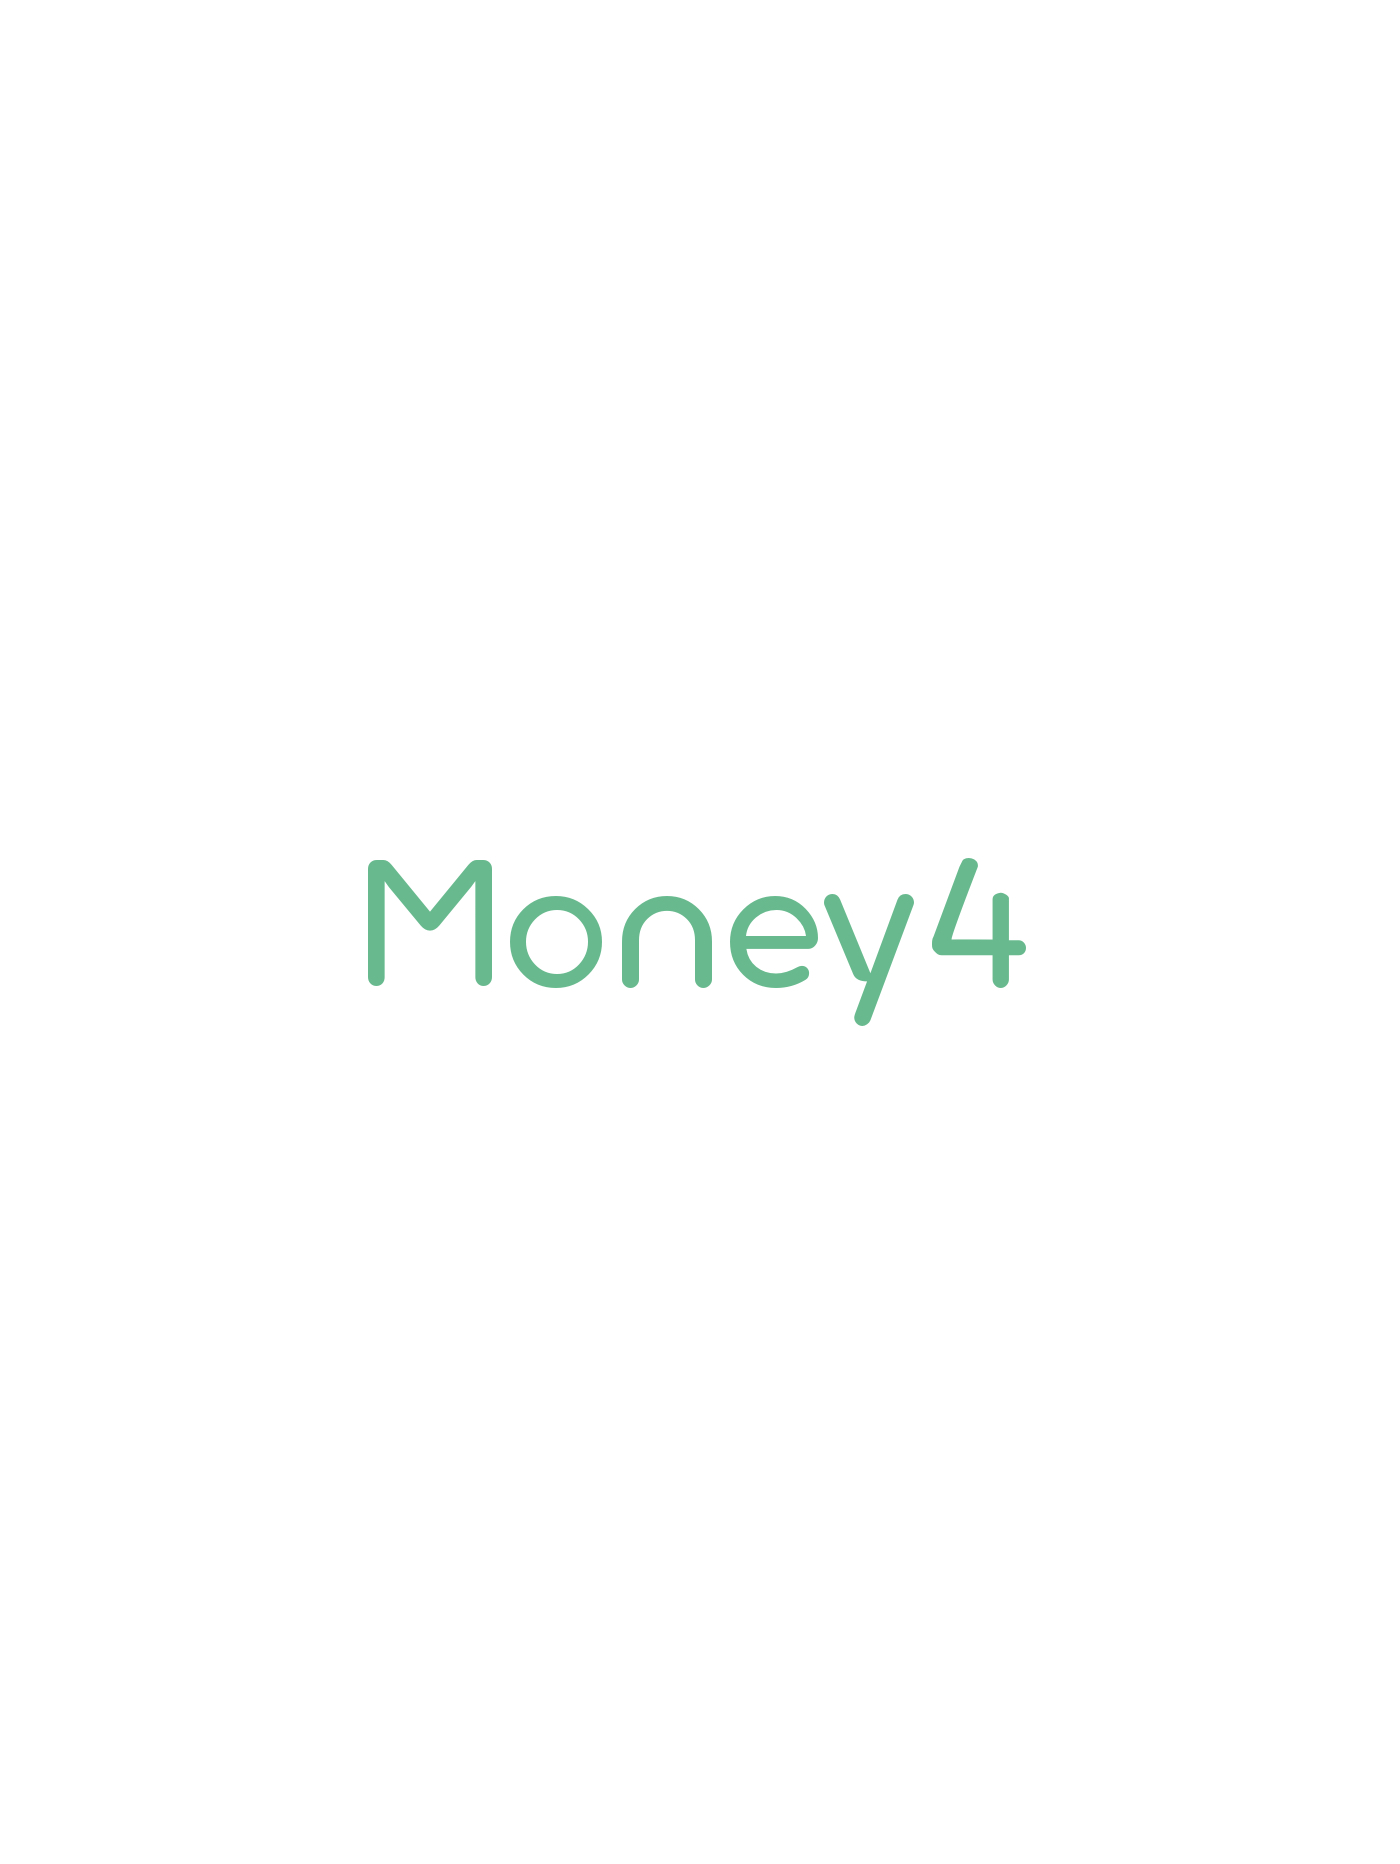 02_01_logo money4_moneyfor_Mobile App and website Money Nebeus_Money4_by_basov_design